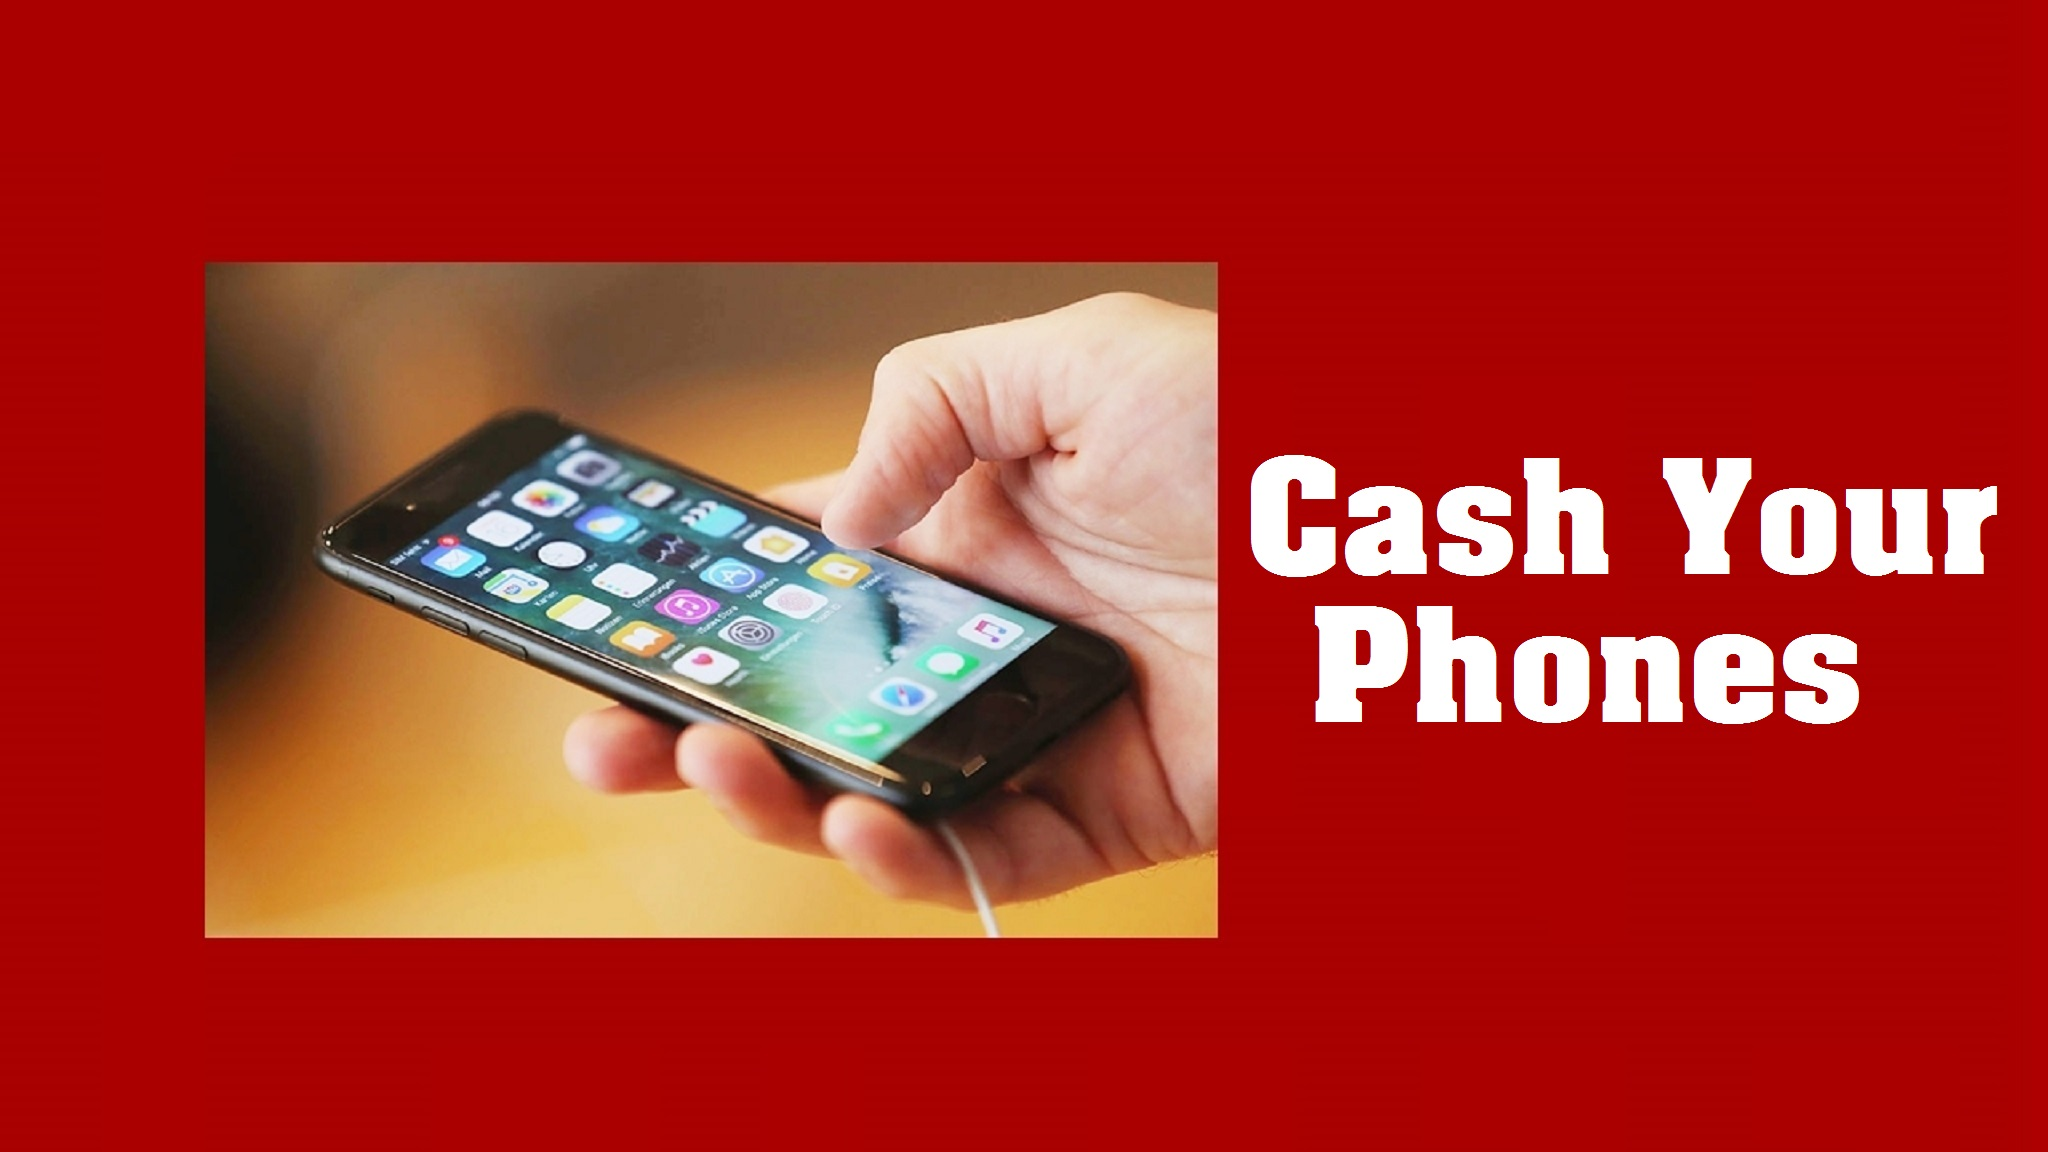 520: Cash Your Phones: Why and How to Sell Your Mobile Phones for Cash